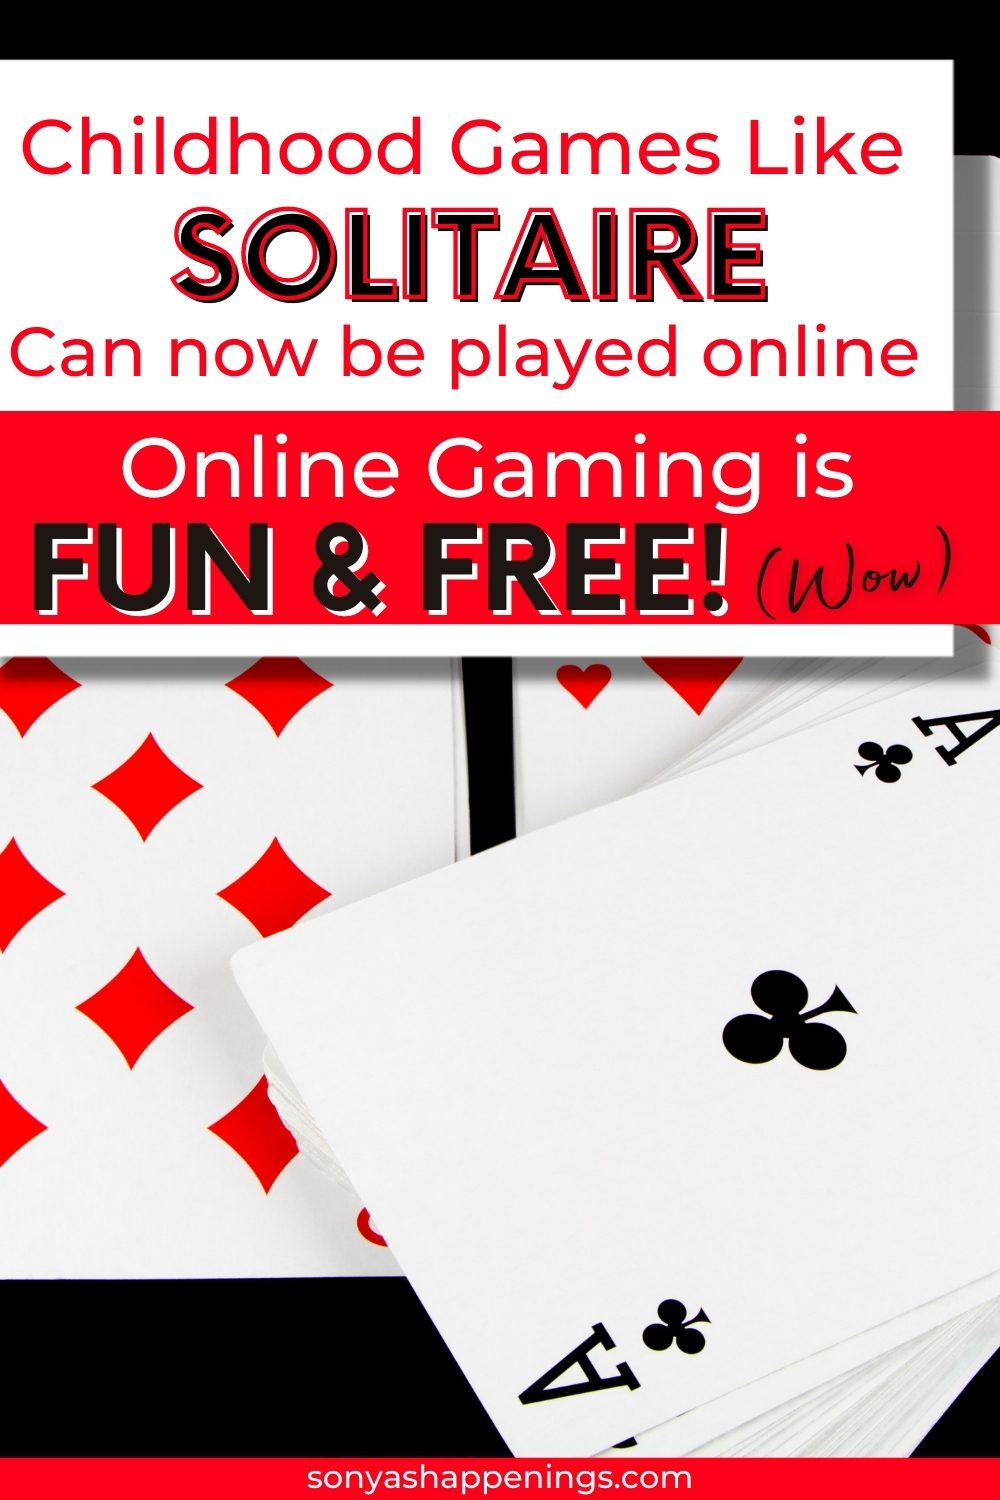 Childhood games like solitaire can now be played online!